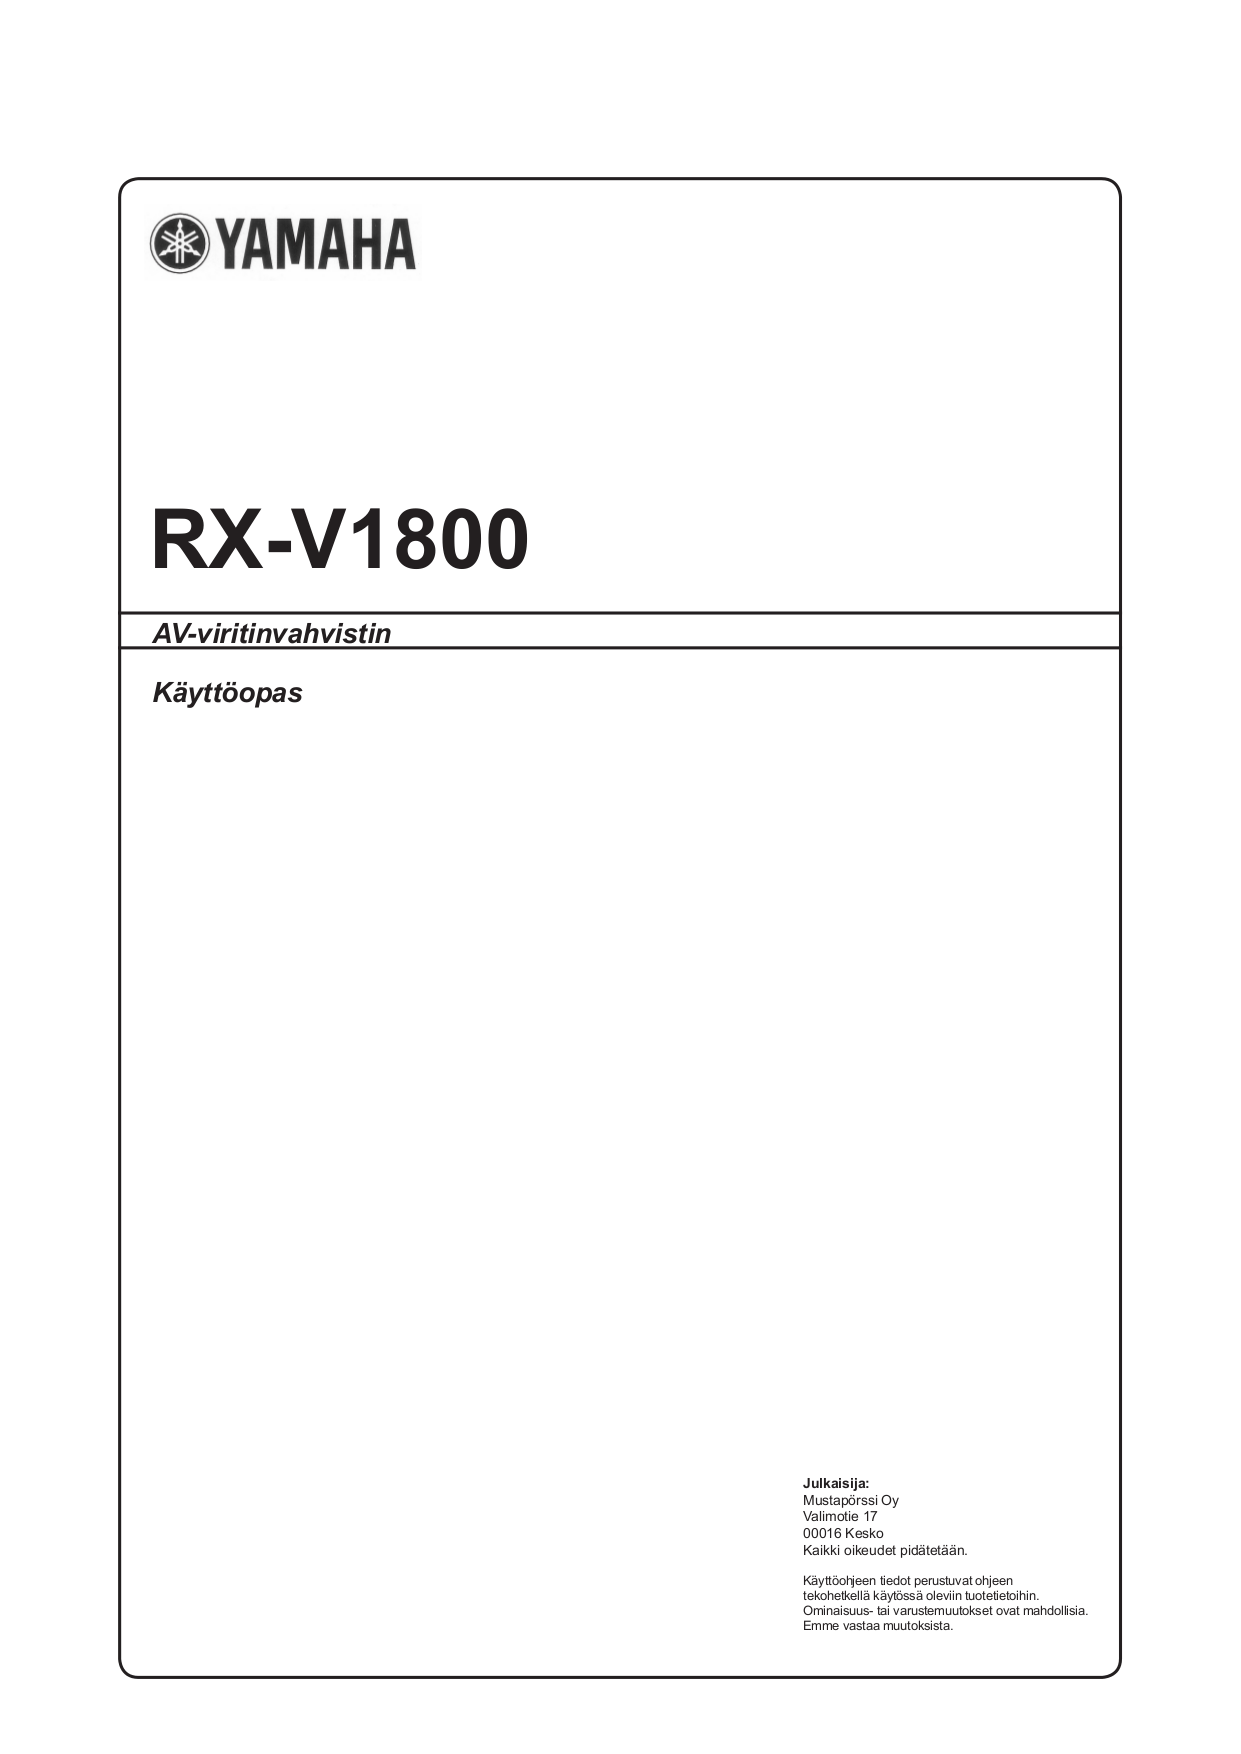 Download free pdf for Yamaha RX-V1800 Receiver manual